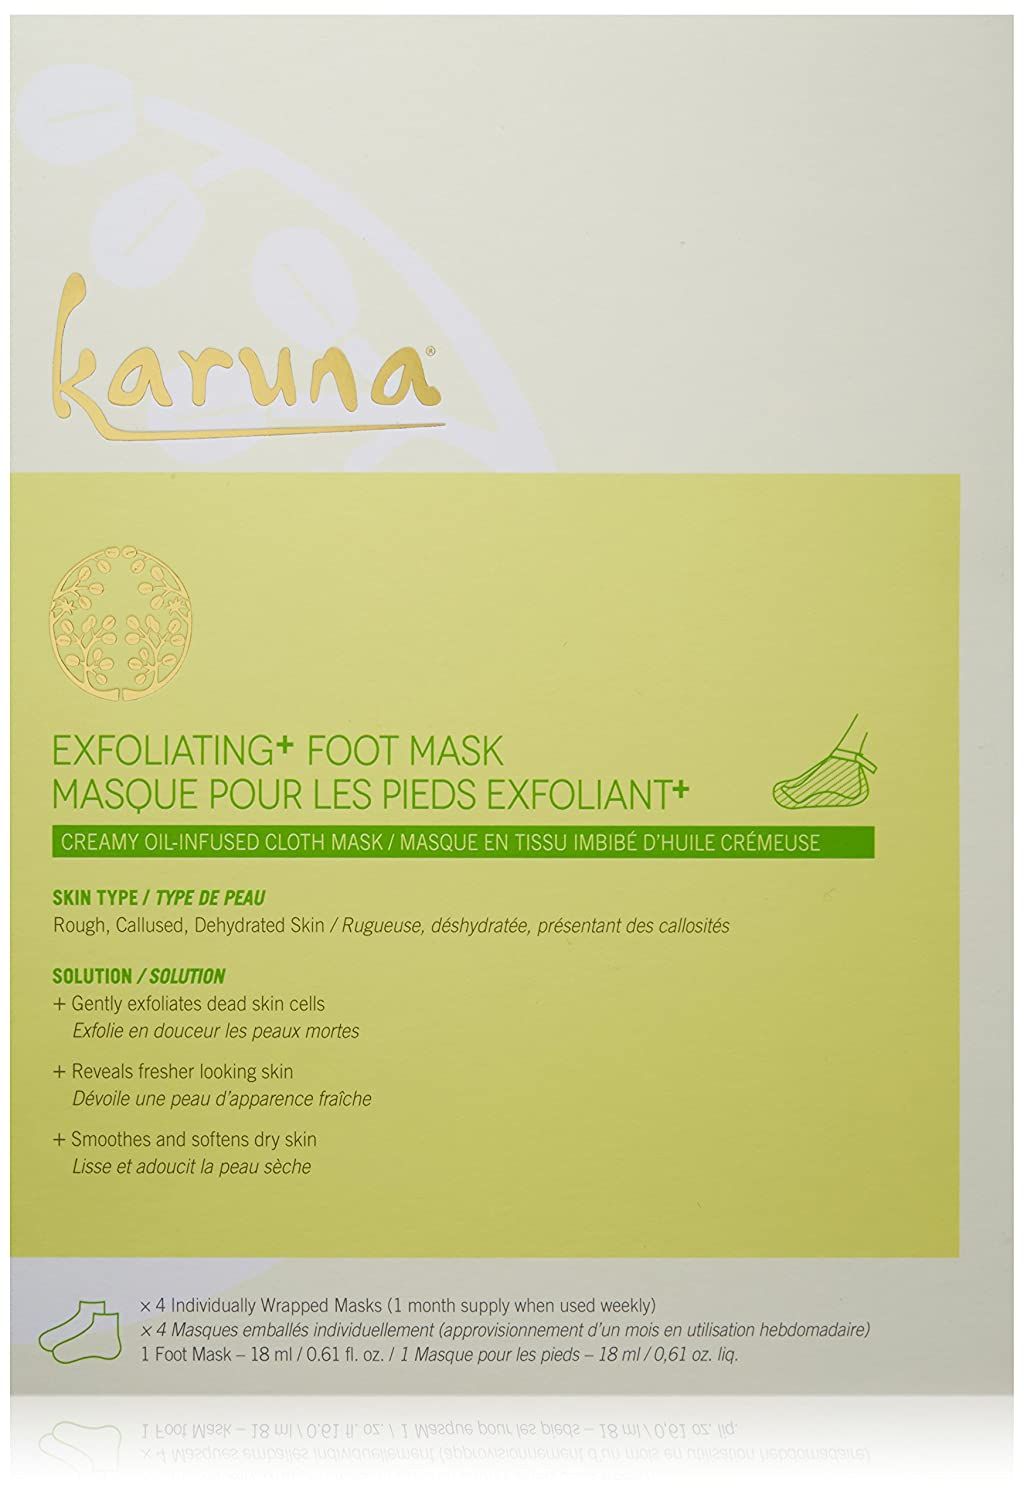 Exfoliating Foot Mask for Rough, Callused, Dehydrated Skin Karuna